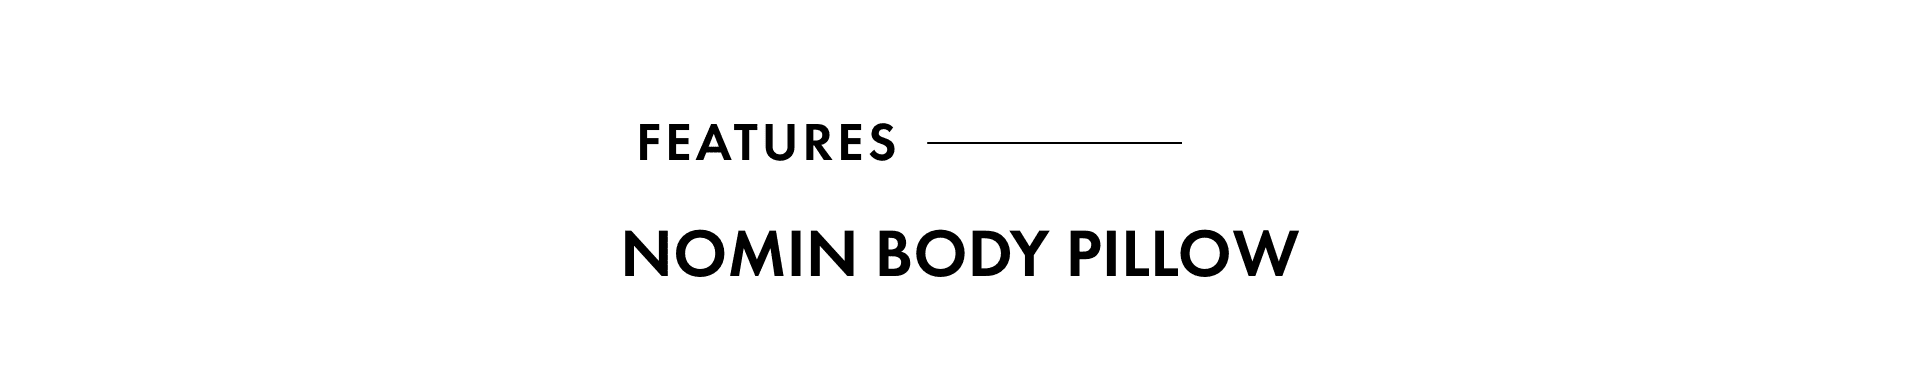 FEATURES NOMIN BODY PILLOW